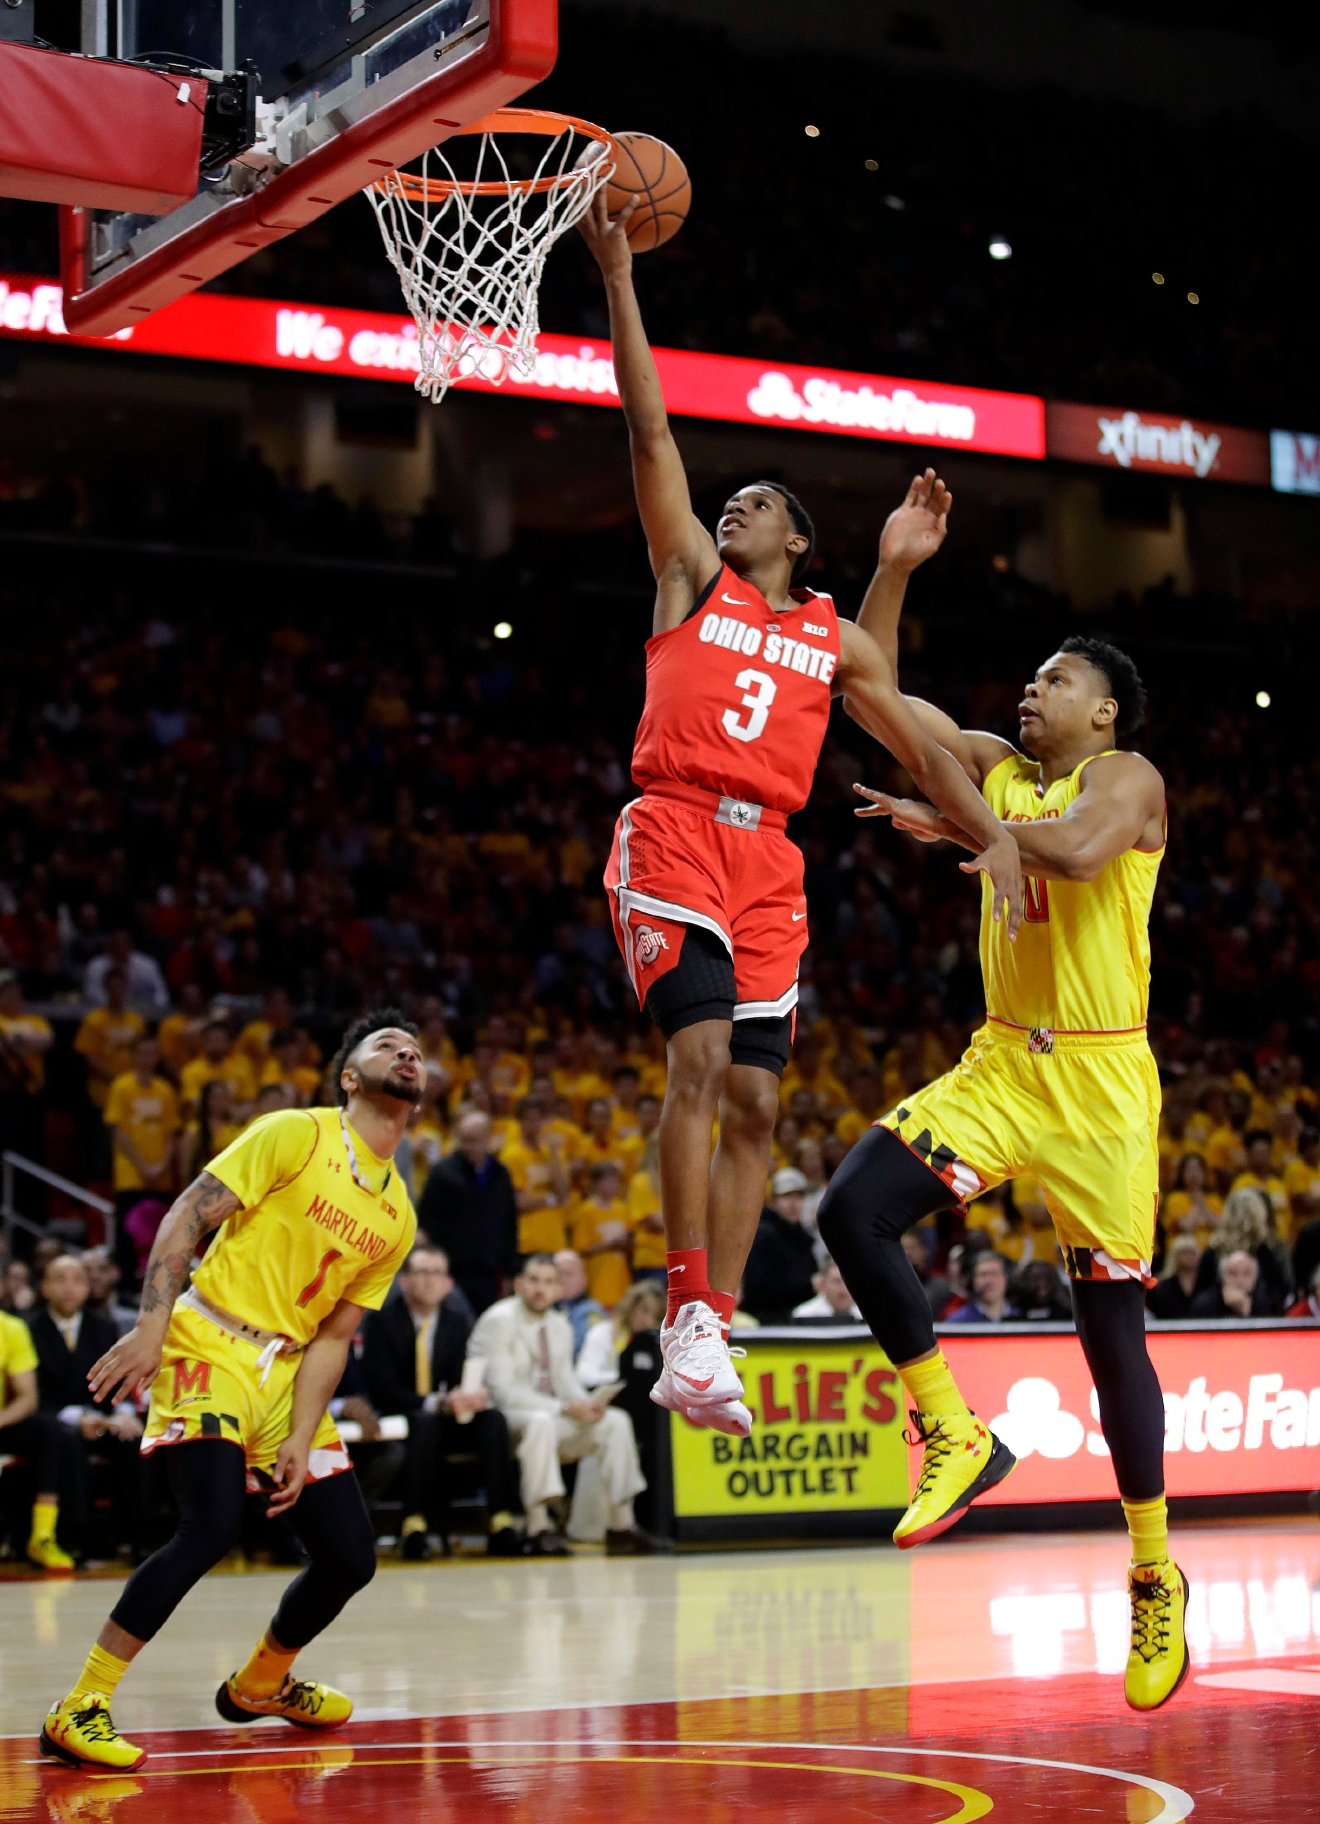 Ohio State guard C.J. Jackson (3) shoots over Maryland guard Jaylen Brantley, bottom left, and forward L.G. Gill in the first half of an NCAA college basketball game, Saturday, Feb. 11, 2017, in College Park, Md. (AP Photo/Patrick Semansky)